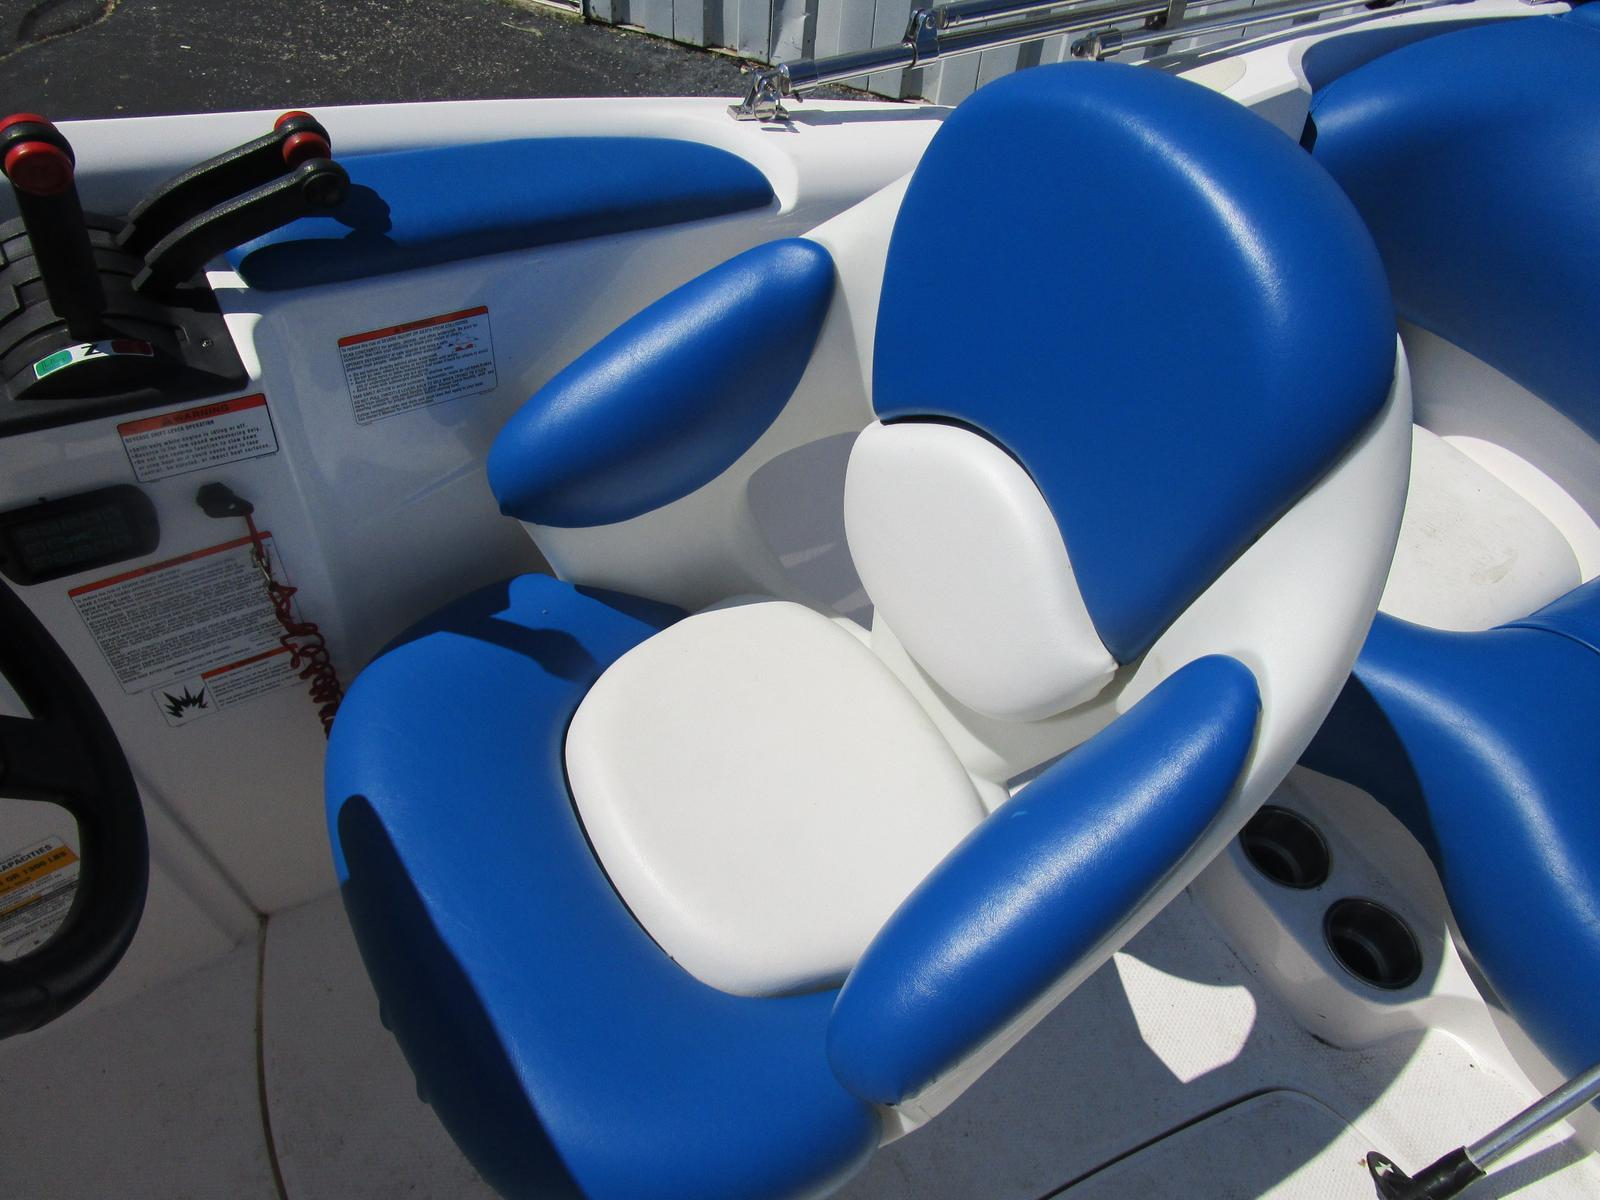 2002 Yamaha boat for sale, model of the boat is LX 2000 & Image # 3 of 5